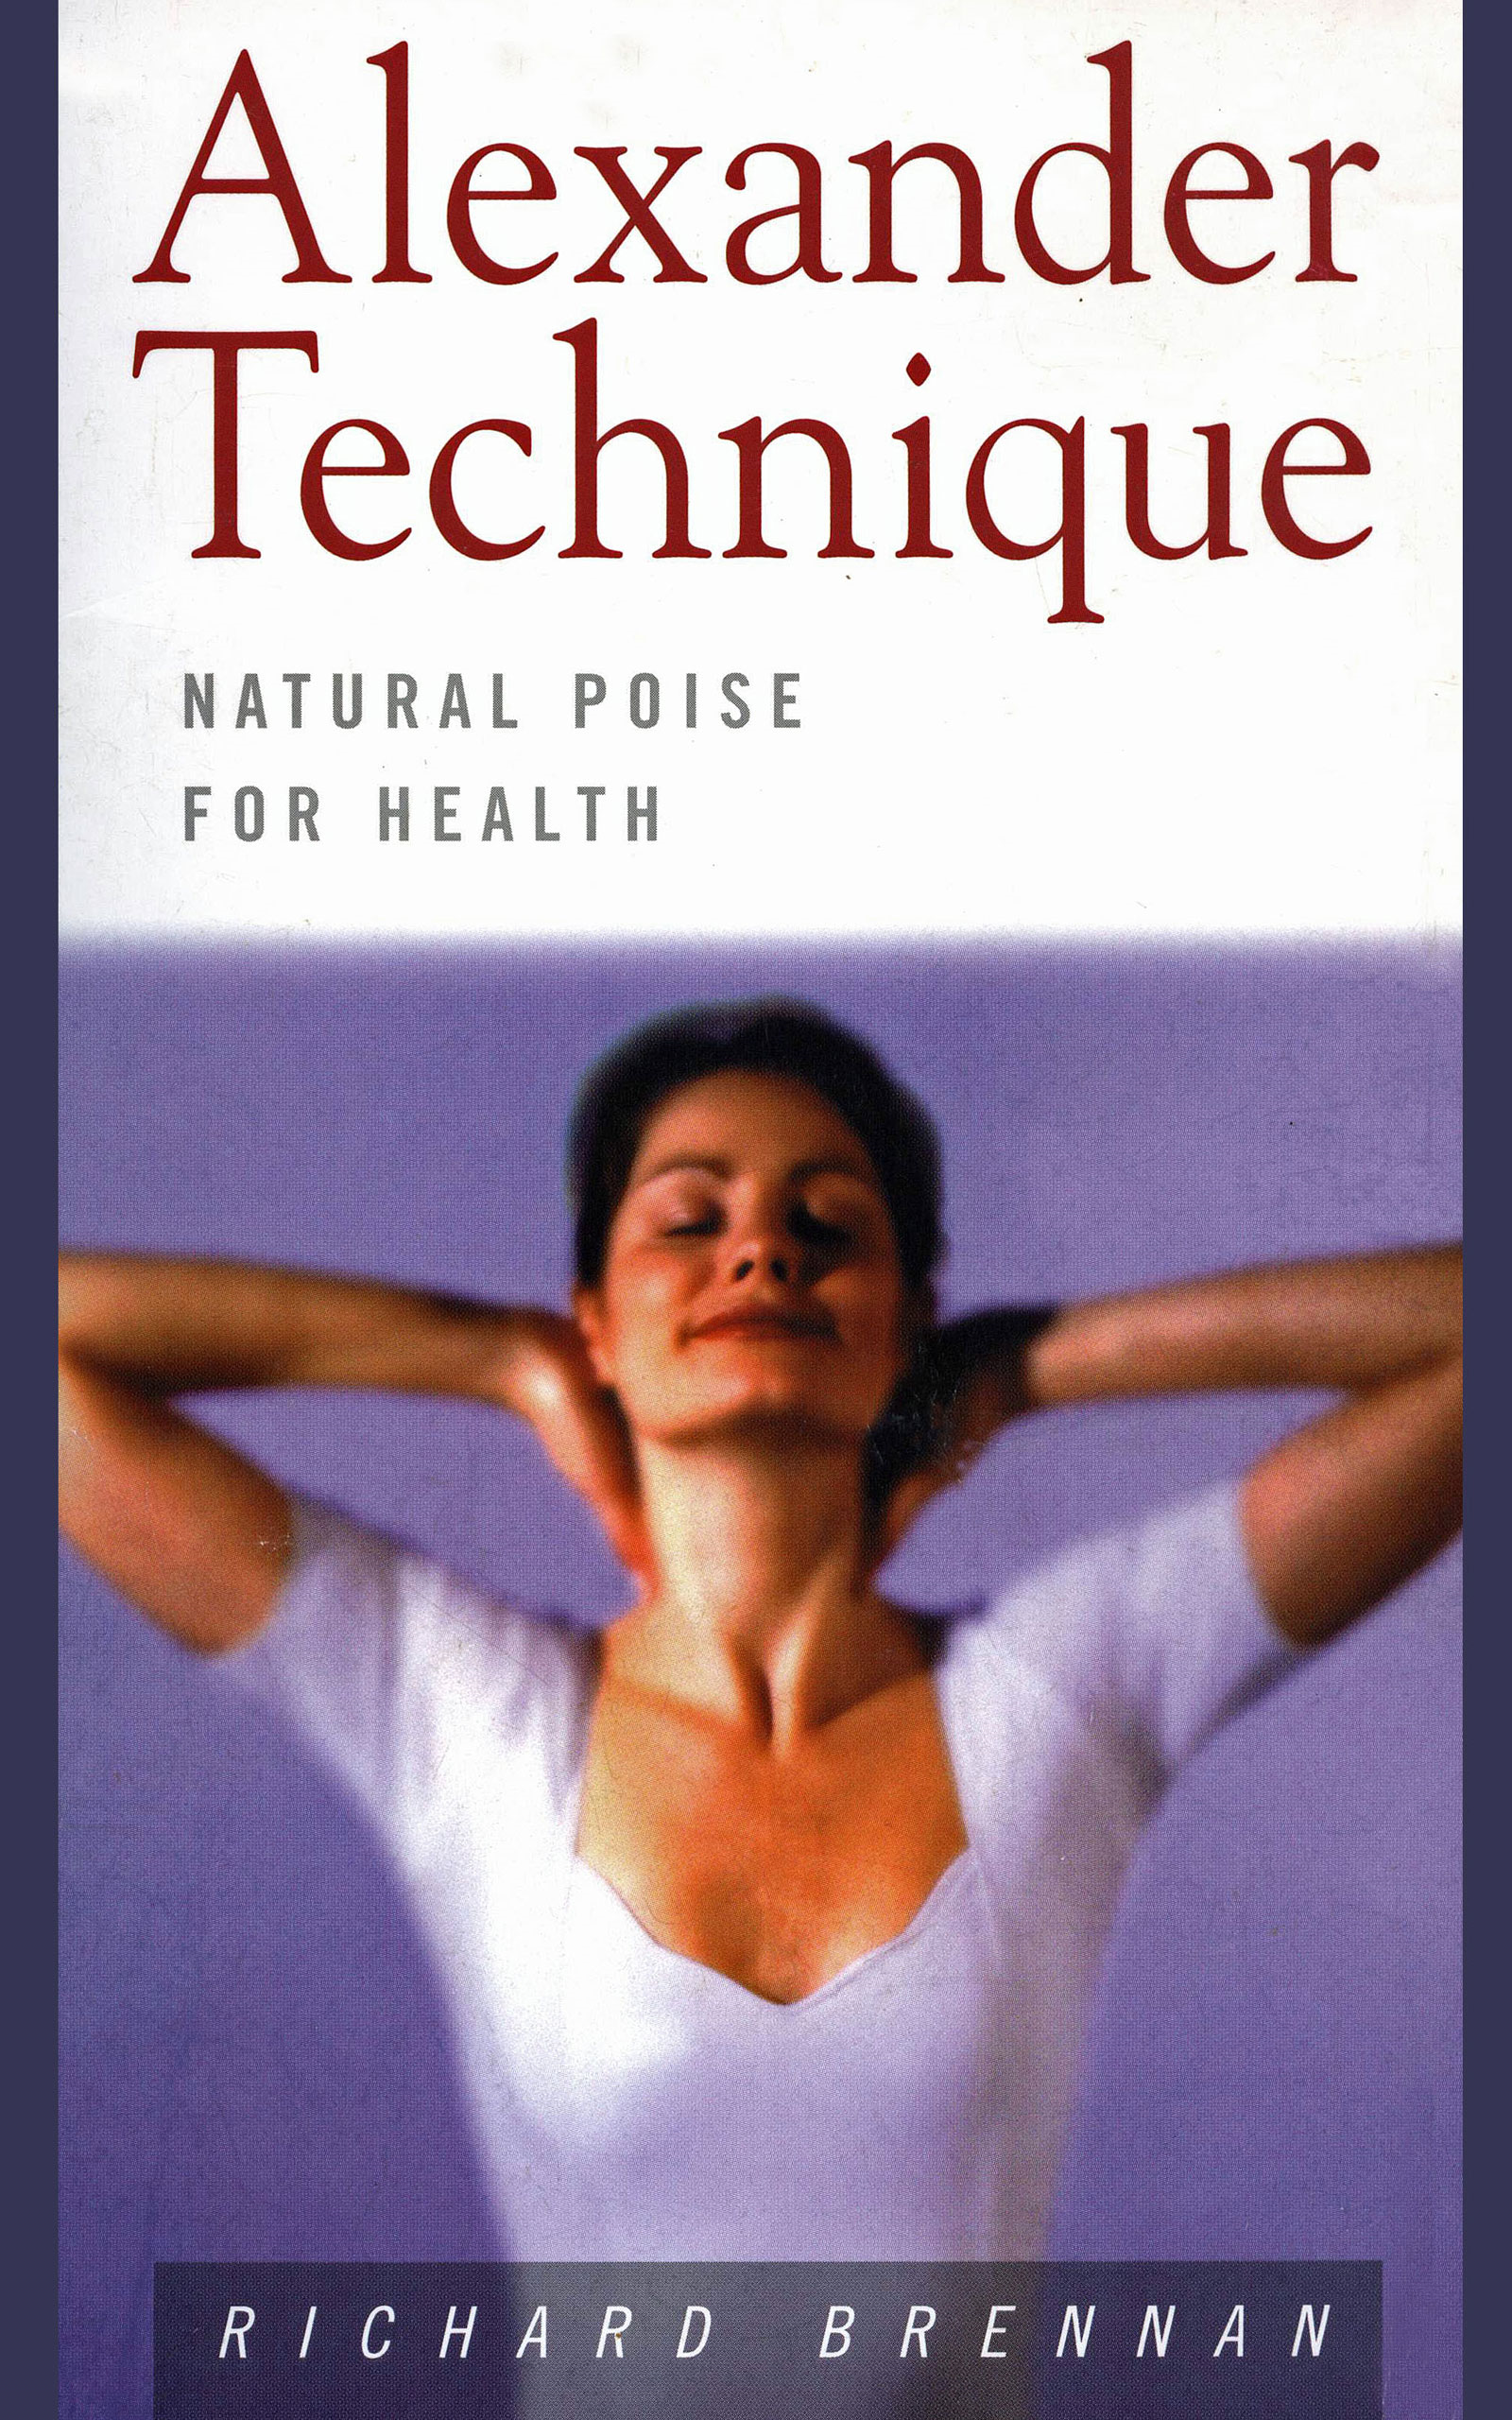 Alexander Technique: Natural Poise for Health By: Richard Brennan